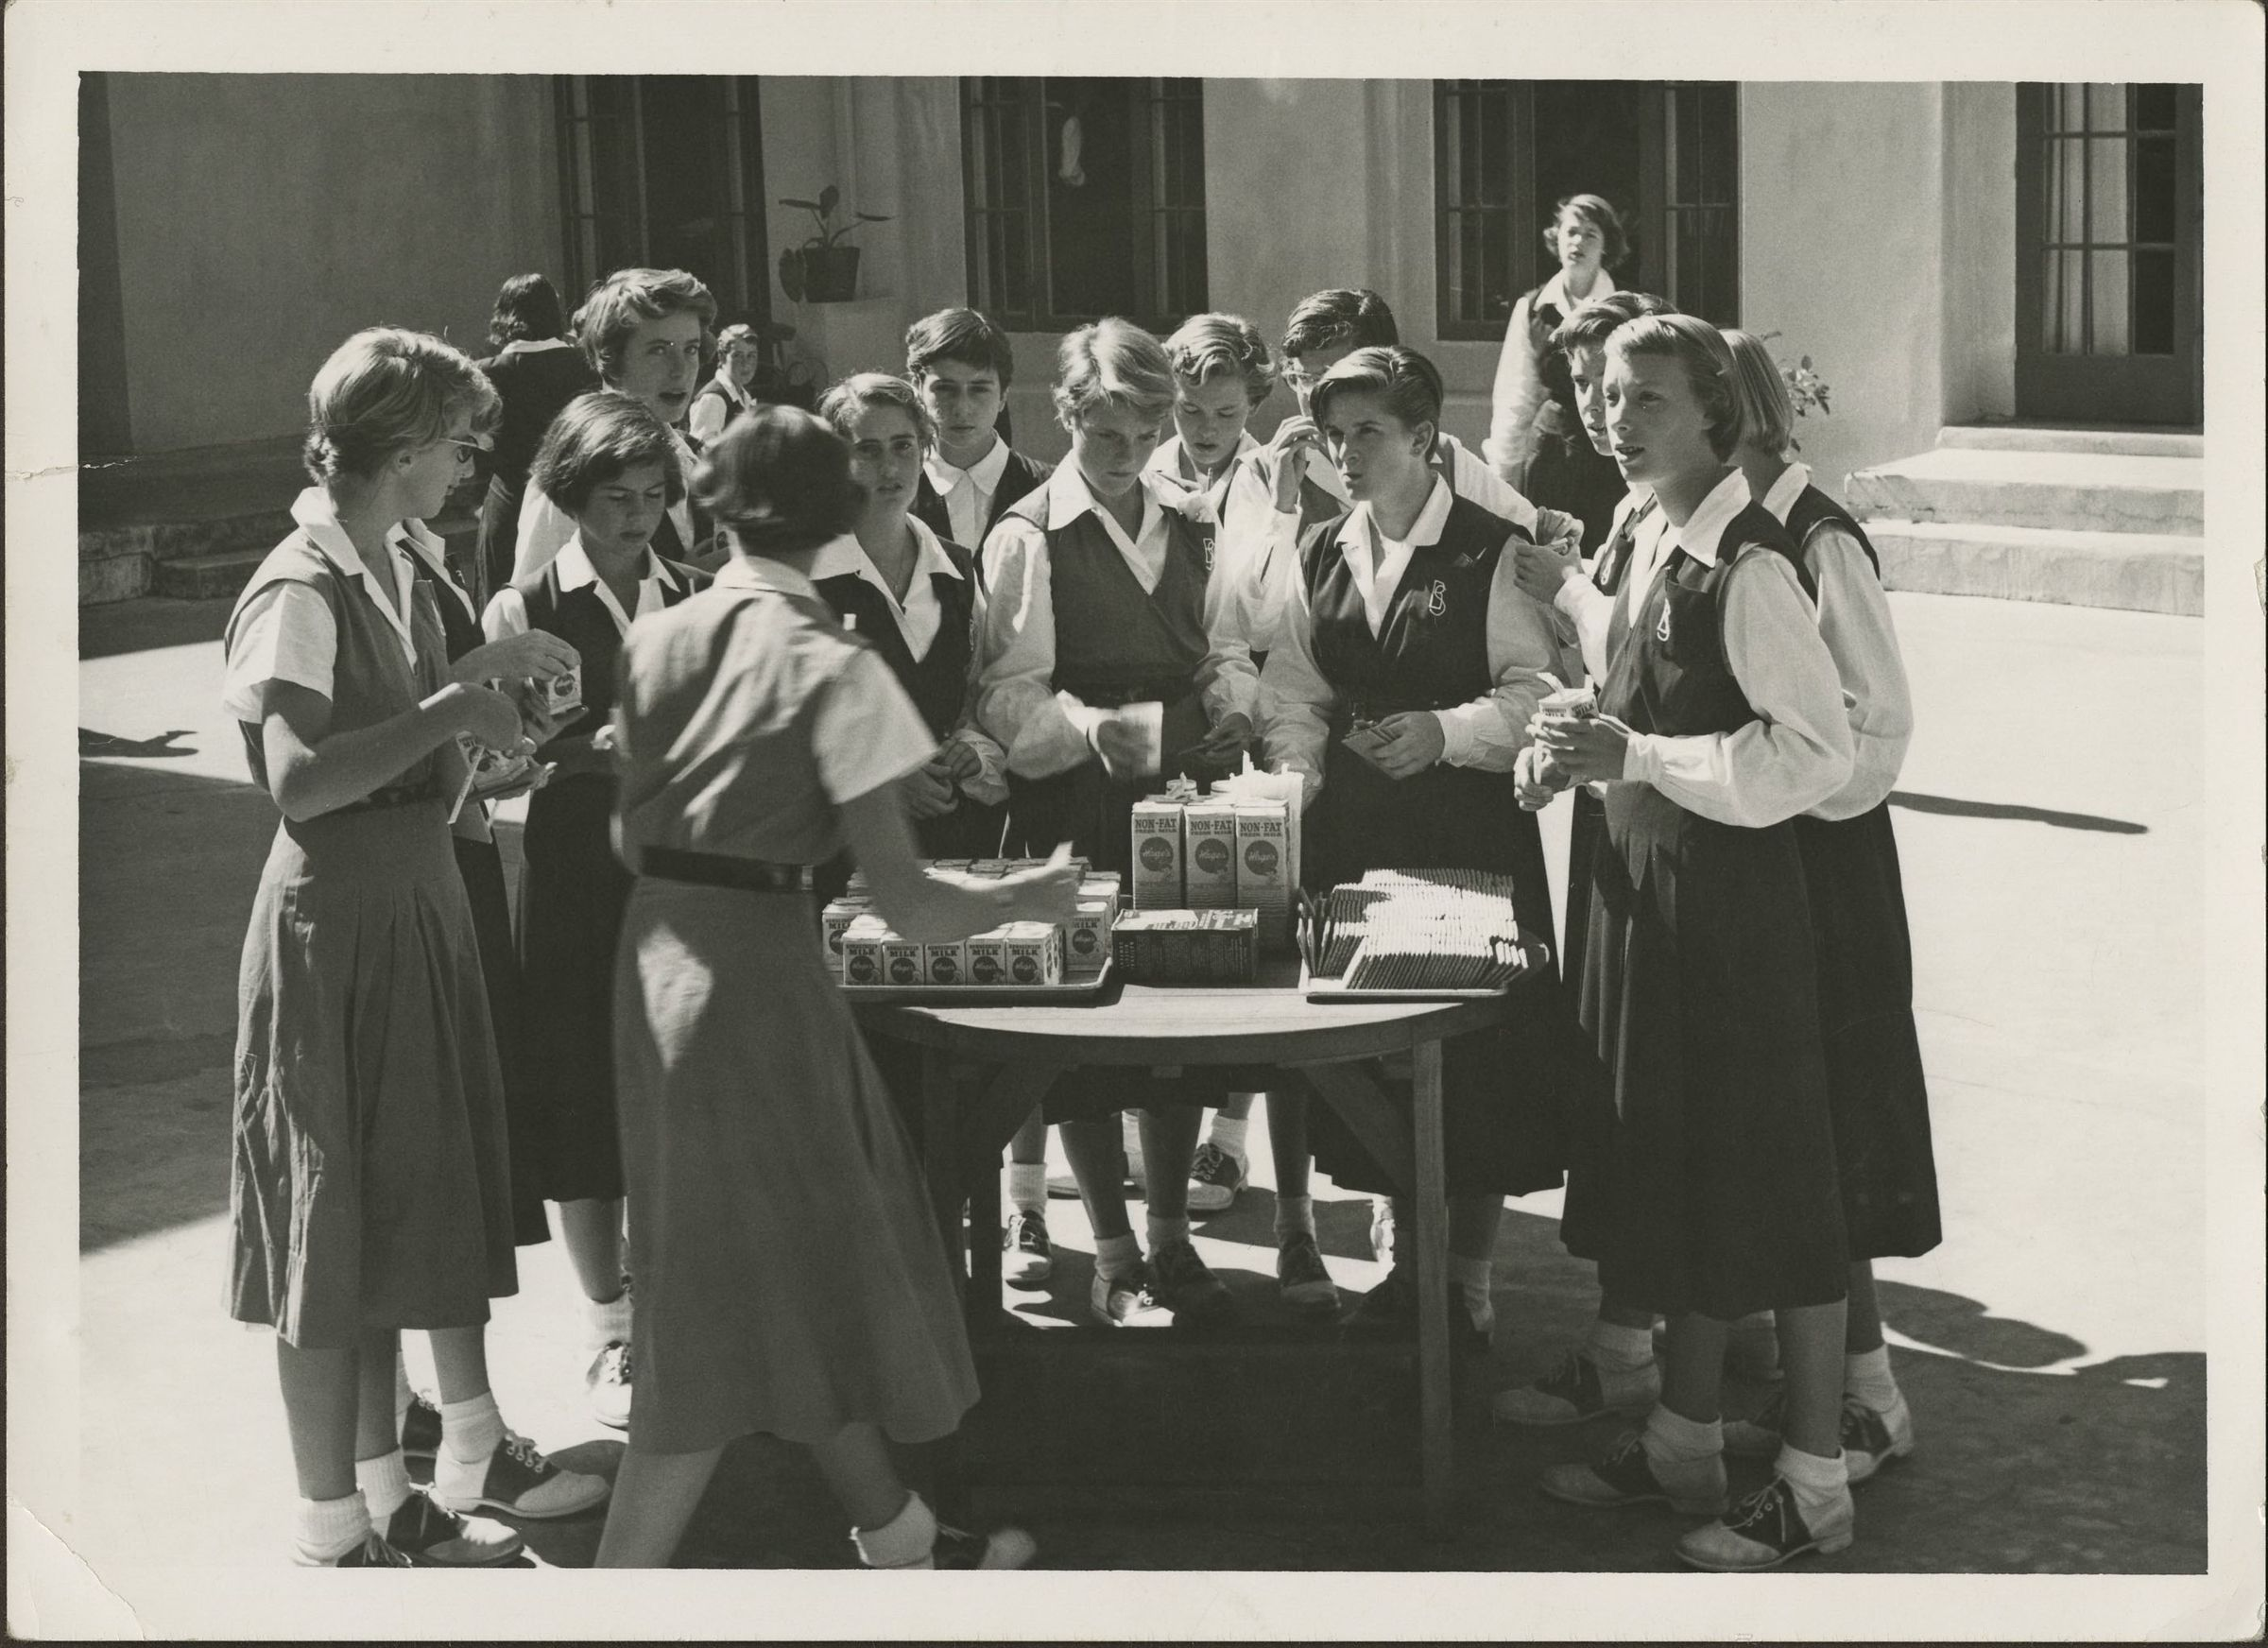 Students enjoyed Milk Break with graham crackers in the late 1950s.